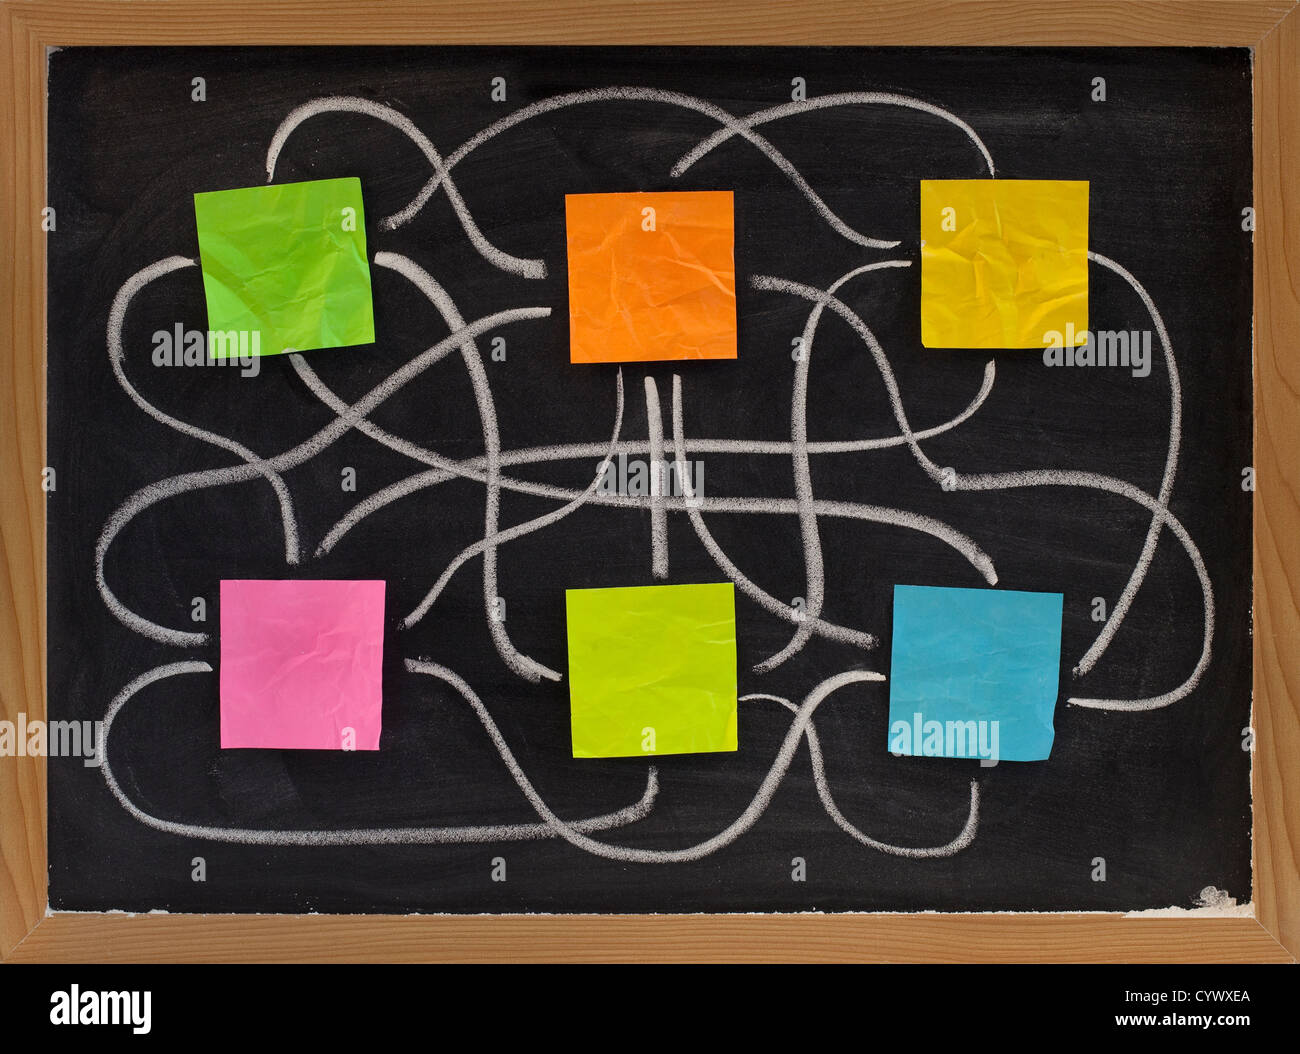 concept of complex or chaotic network interactions - colorful sticky notes and white chalk drawing on blackboard - Stock Image